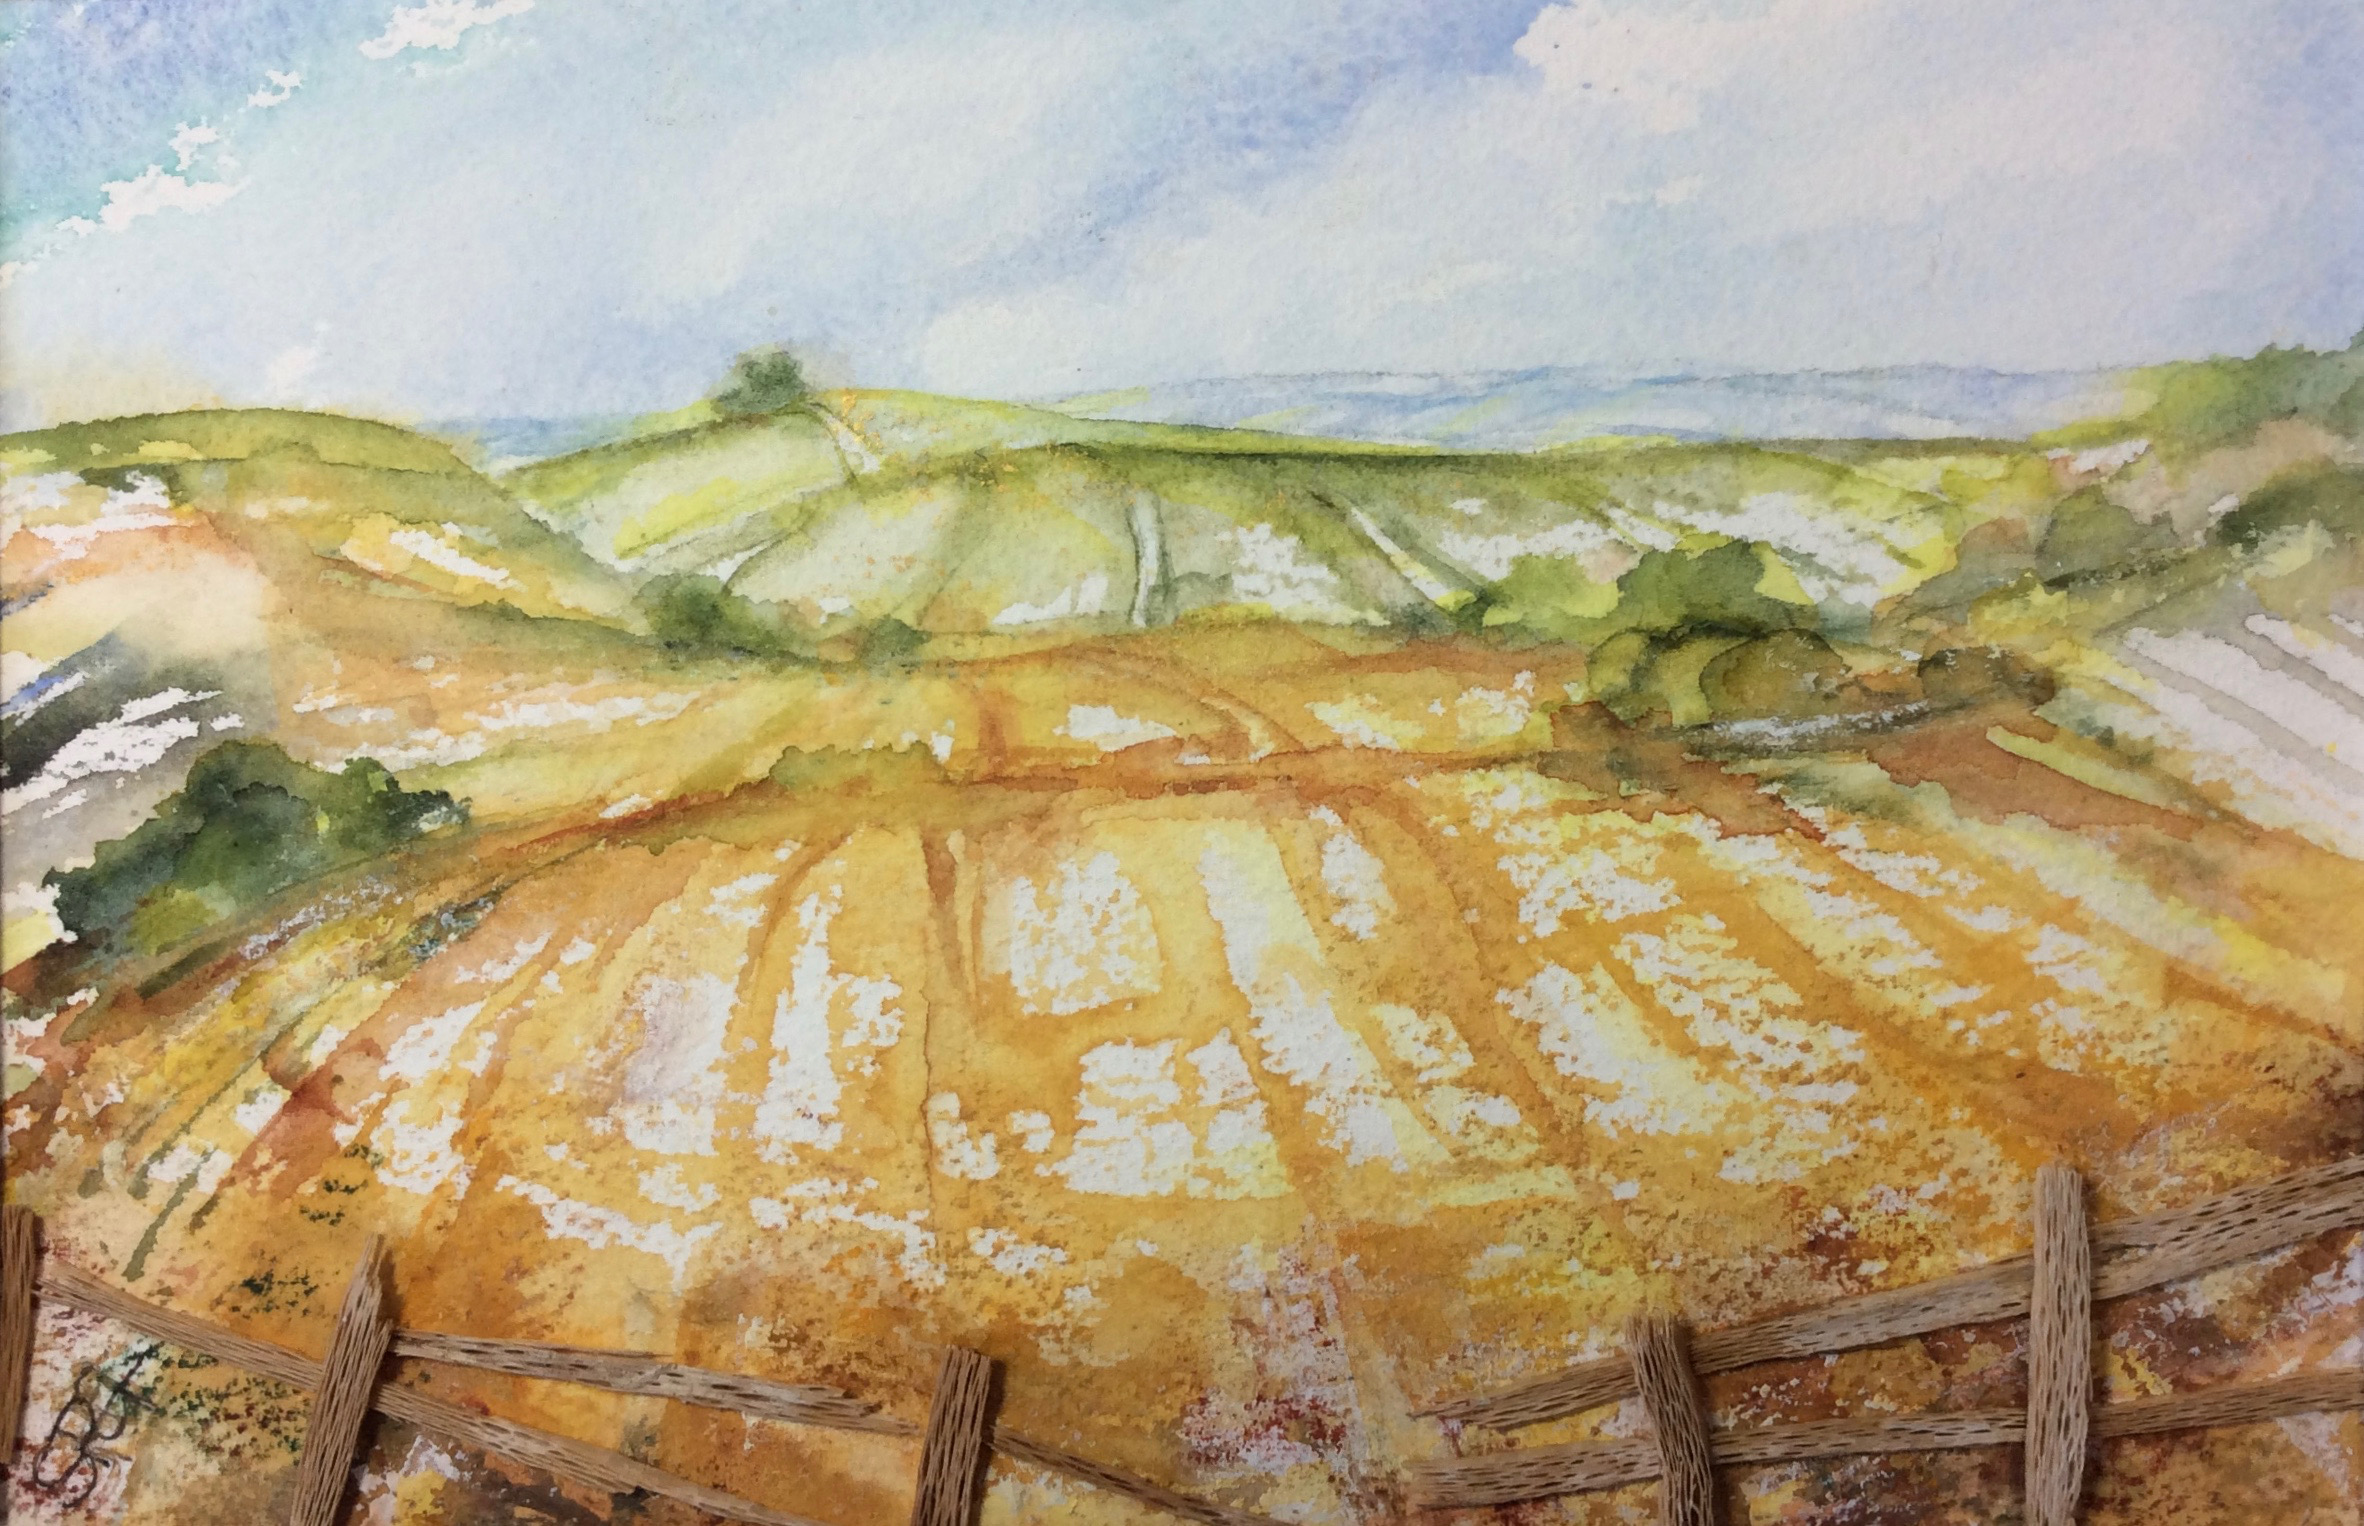 Brightwell Barrow from The Earth Trust